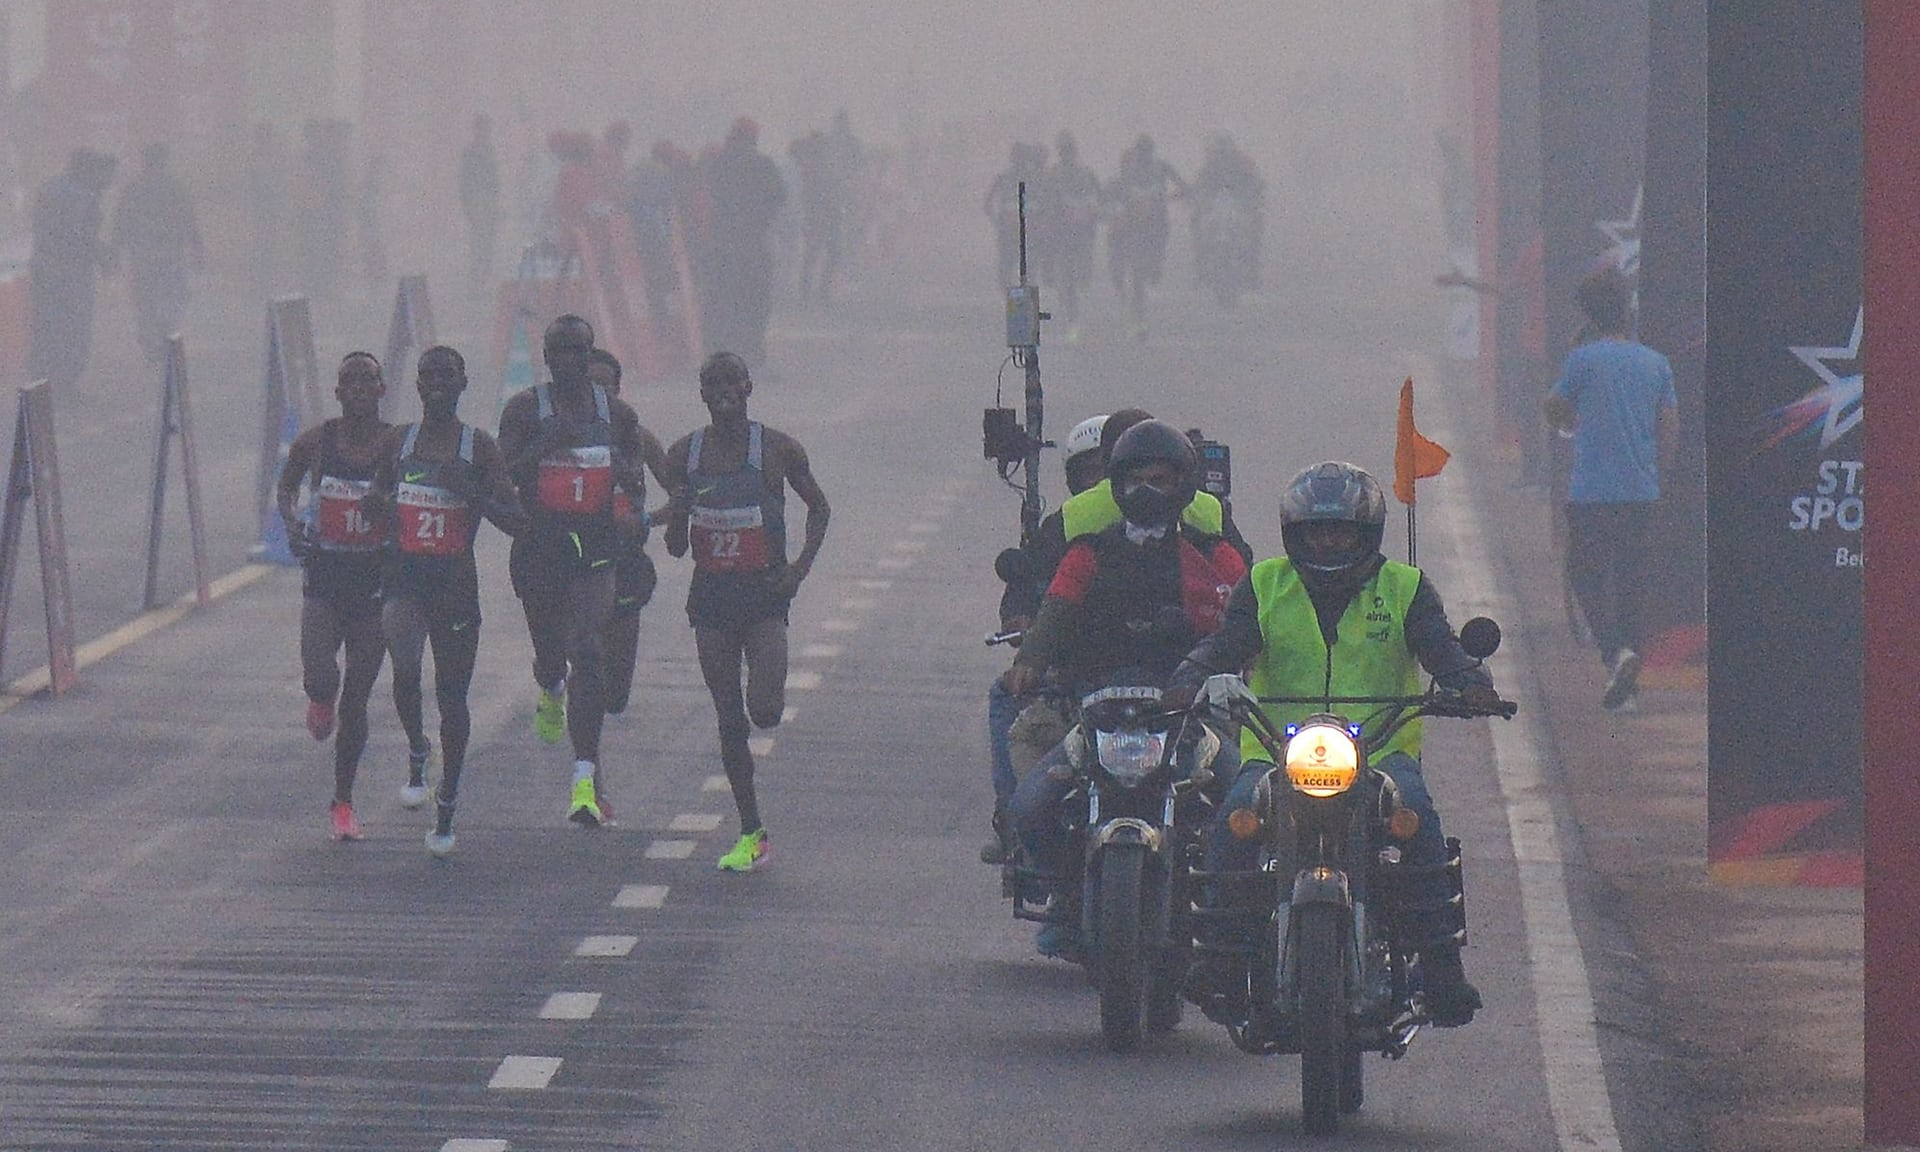 My eyes are burning': Delhi holds half marathon despite pollution warning